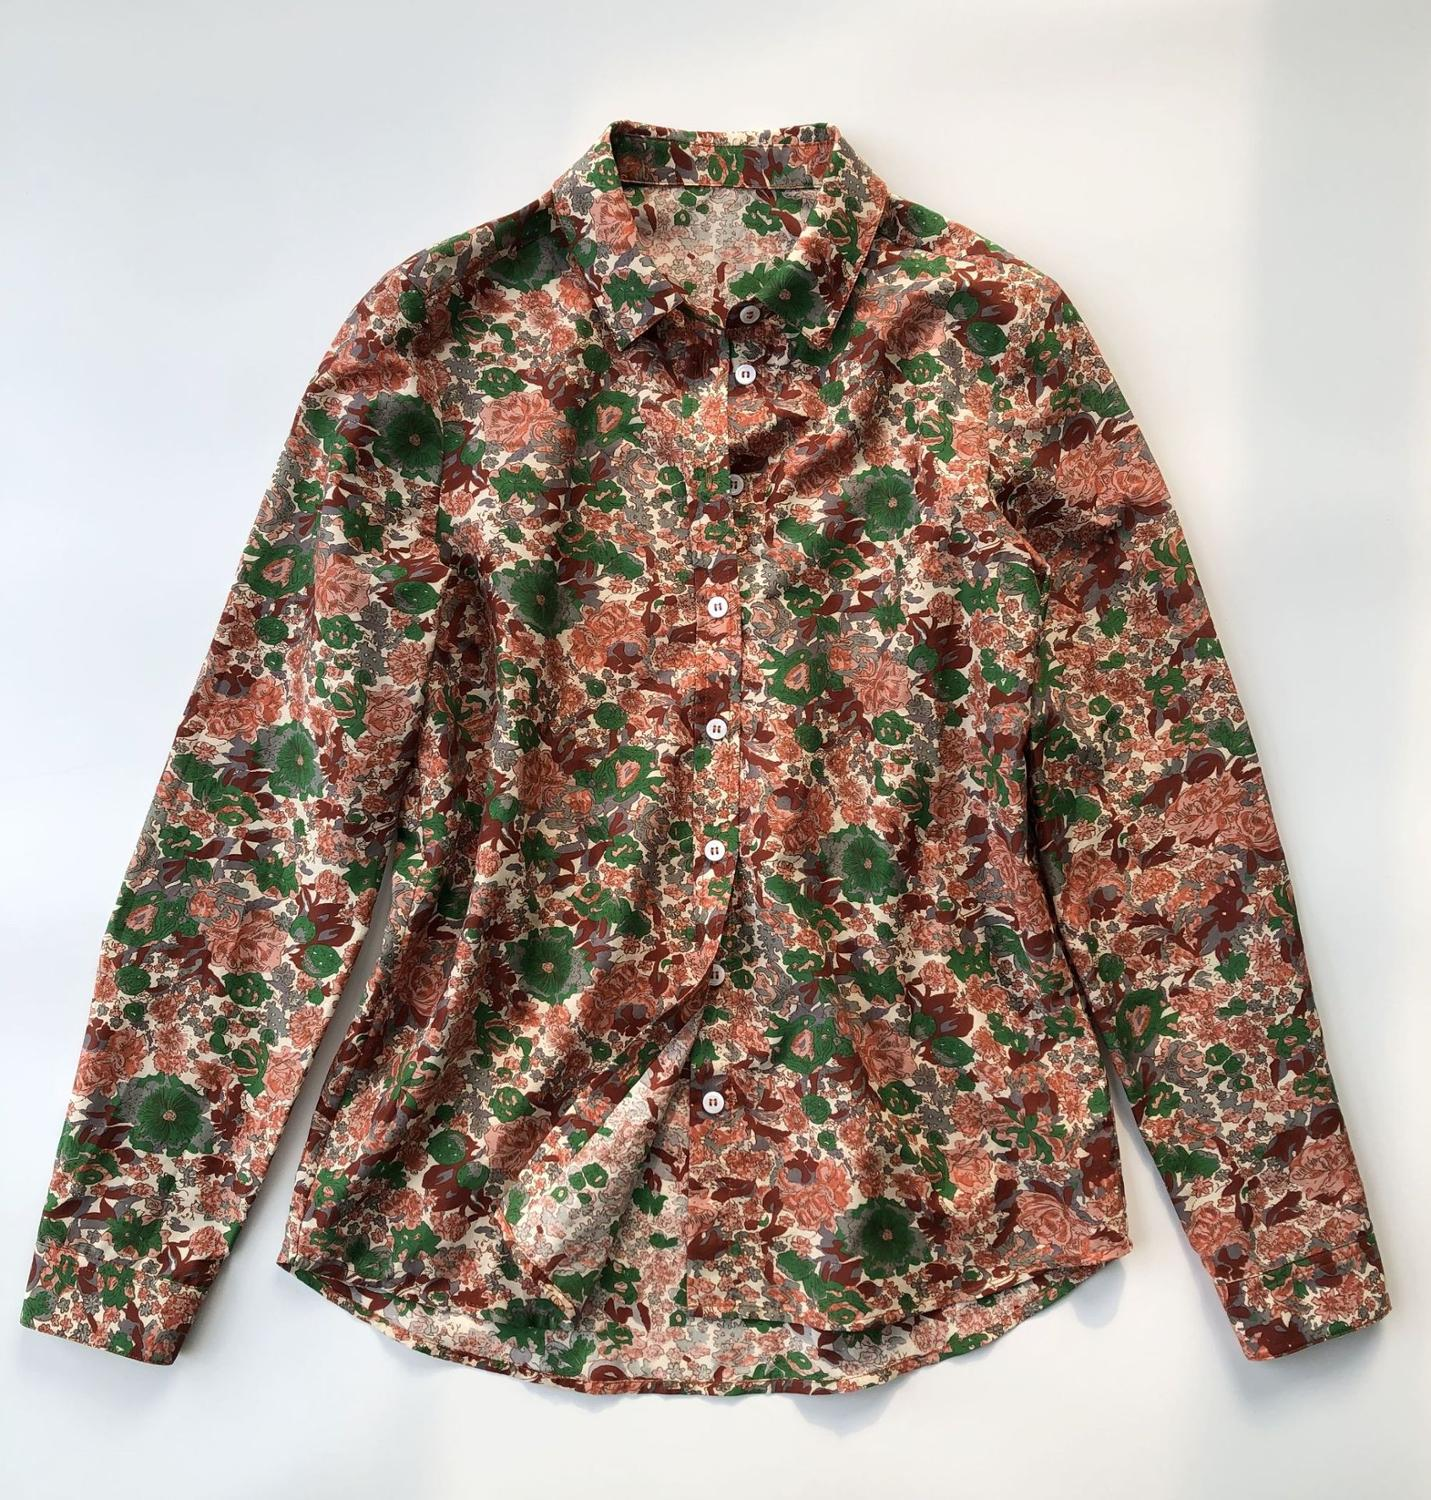 Long Sleeve Turn-down Collar Women Blouse 2020 New Spring Summer Silk and Cotton Flower Print Female Sweet Shirts Tops